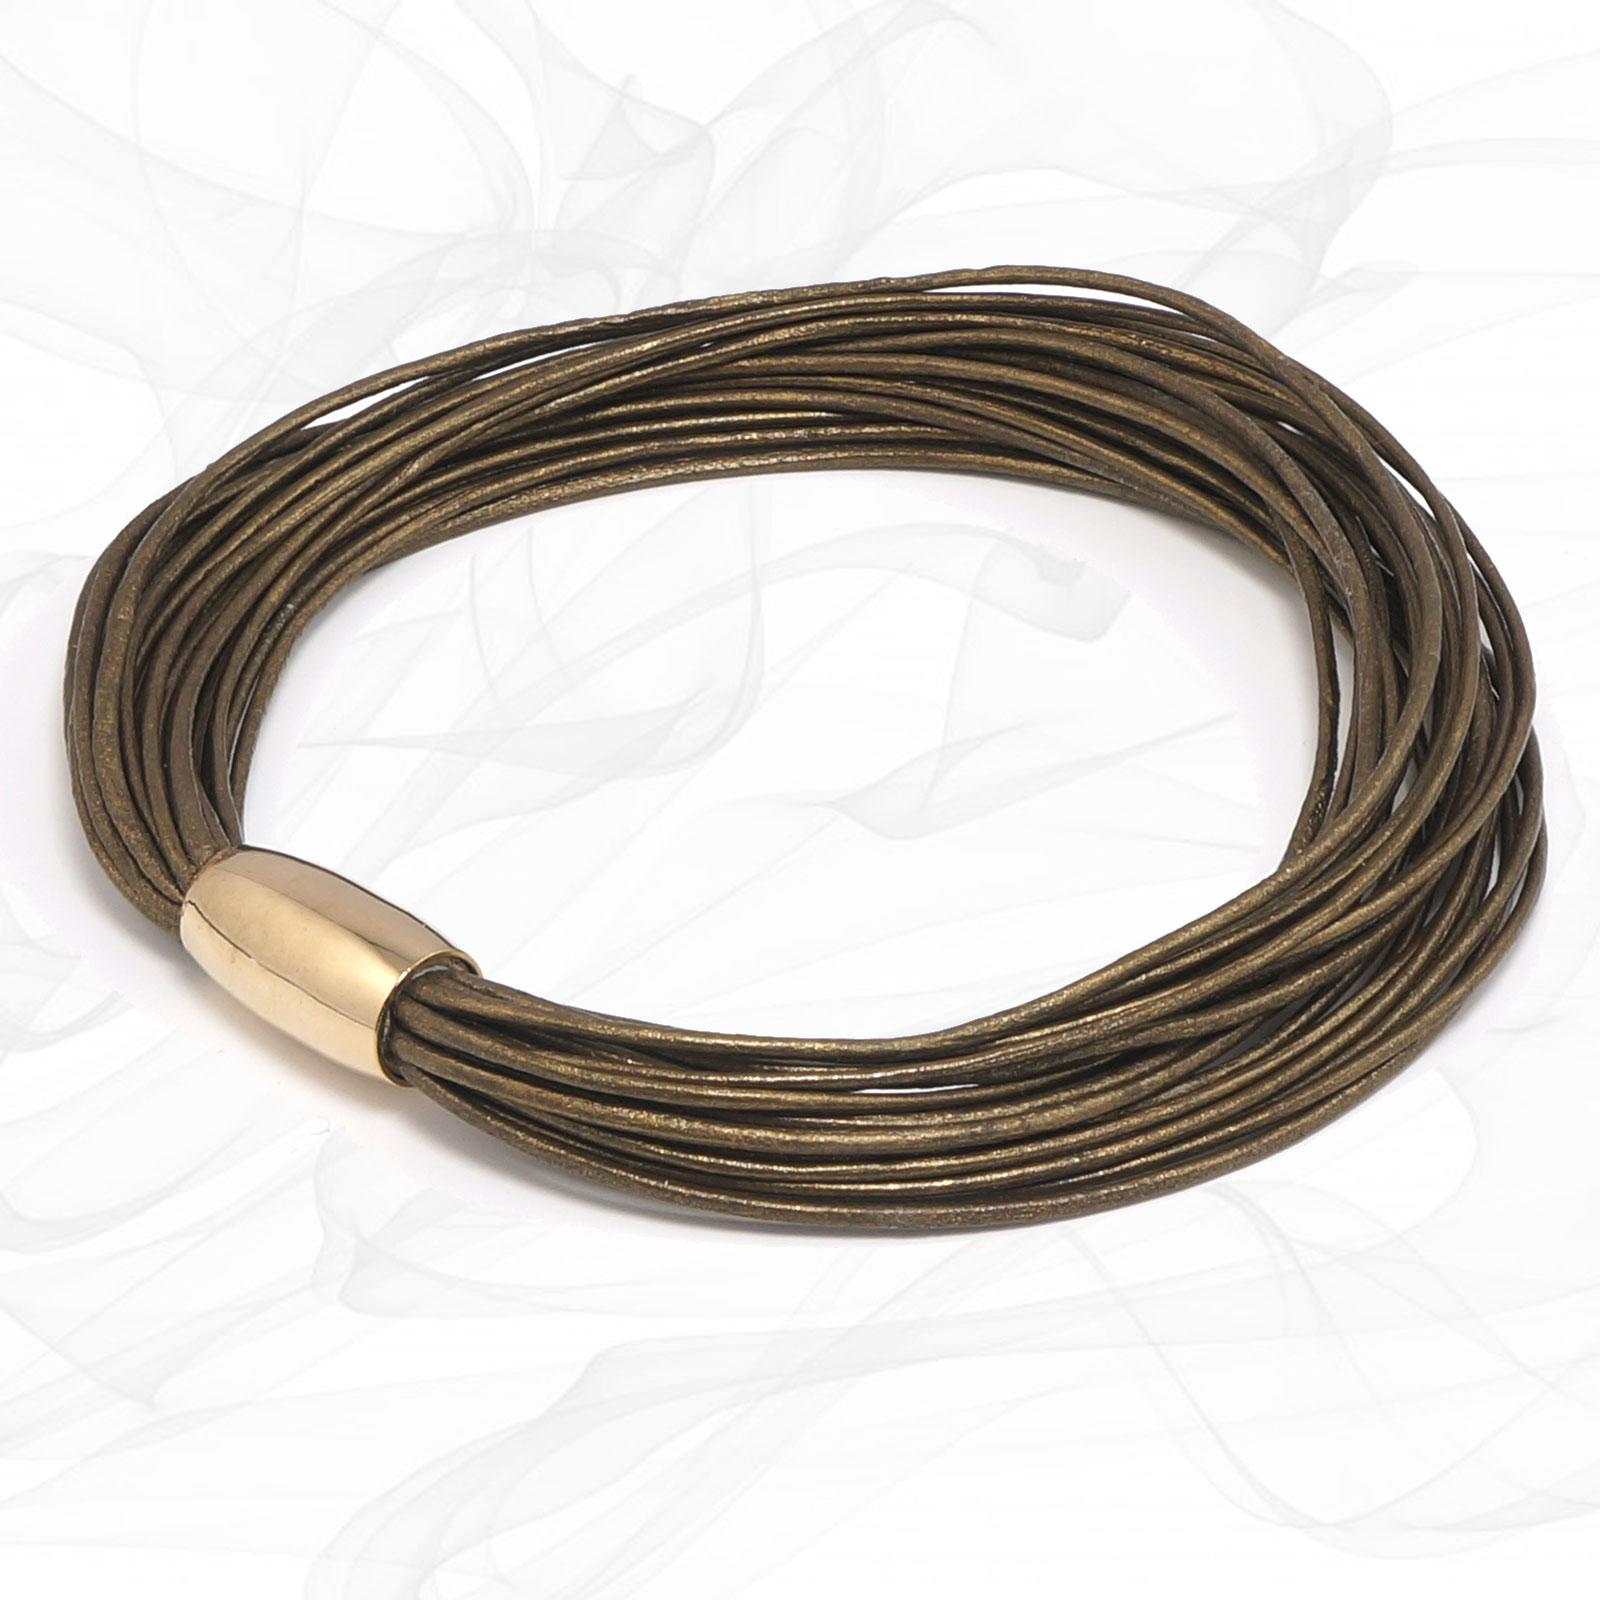 Bronze Multi Strand Leather Bracelet for Women, one size, Limited Edition.